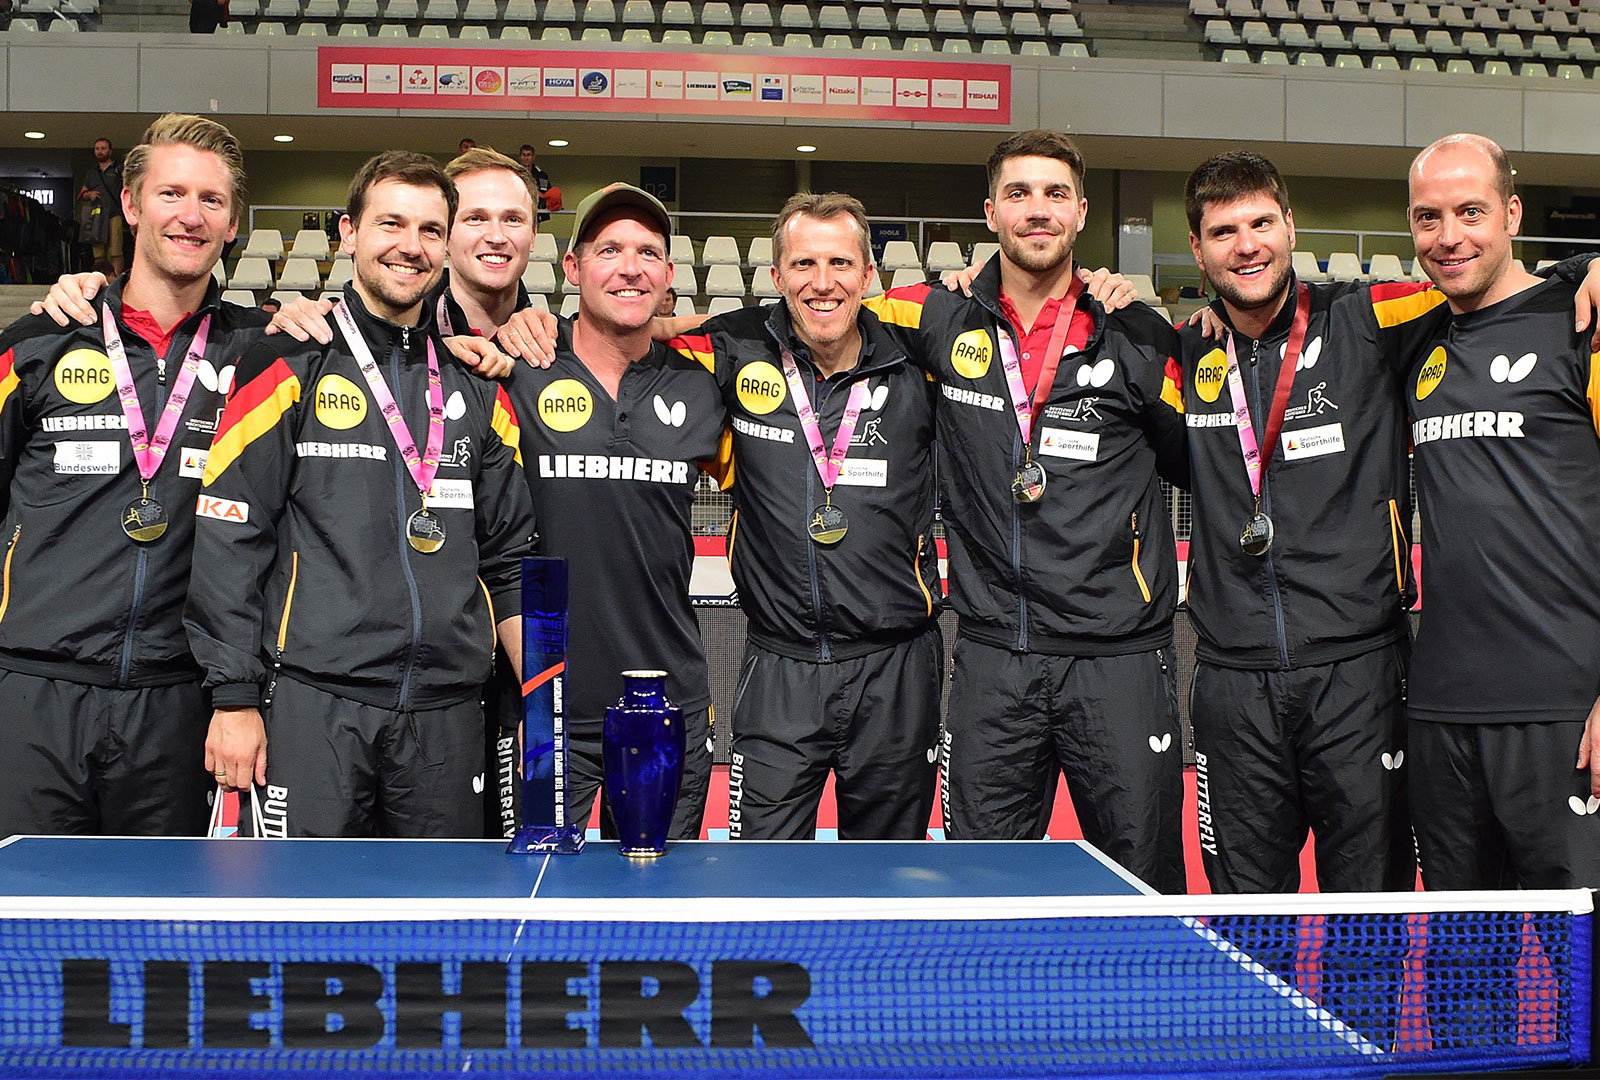 Goldmedaille Team Europameisterschaft in Nantes 2019 - Foto: Manfred Schillings